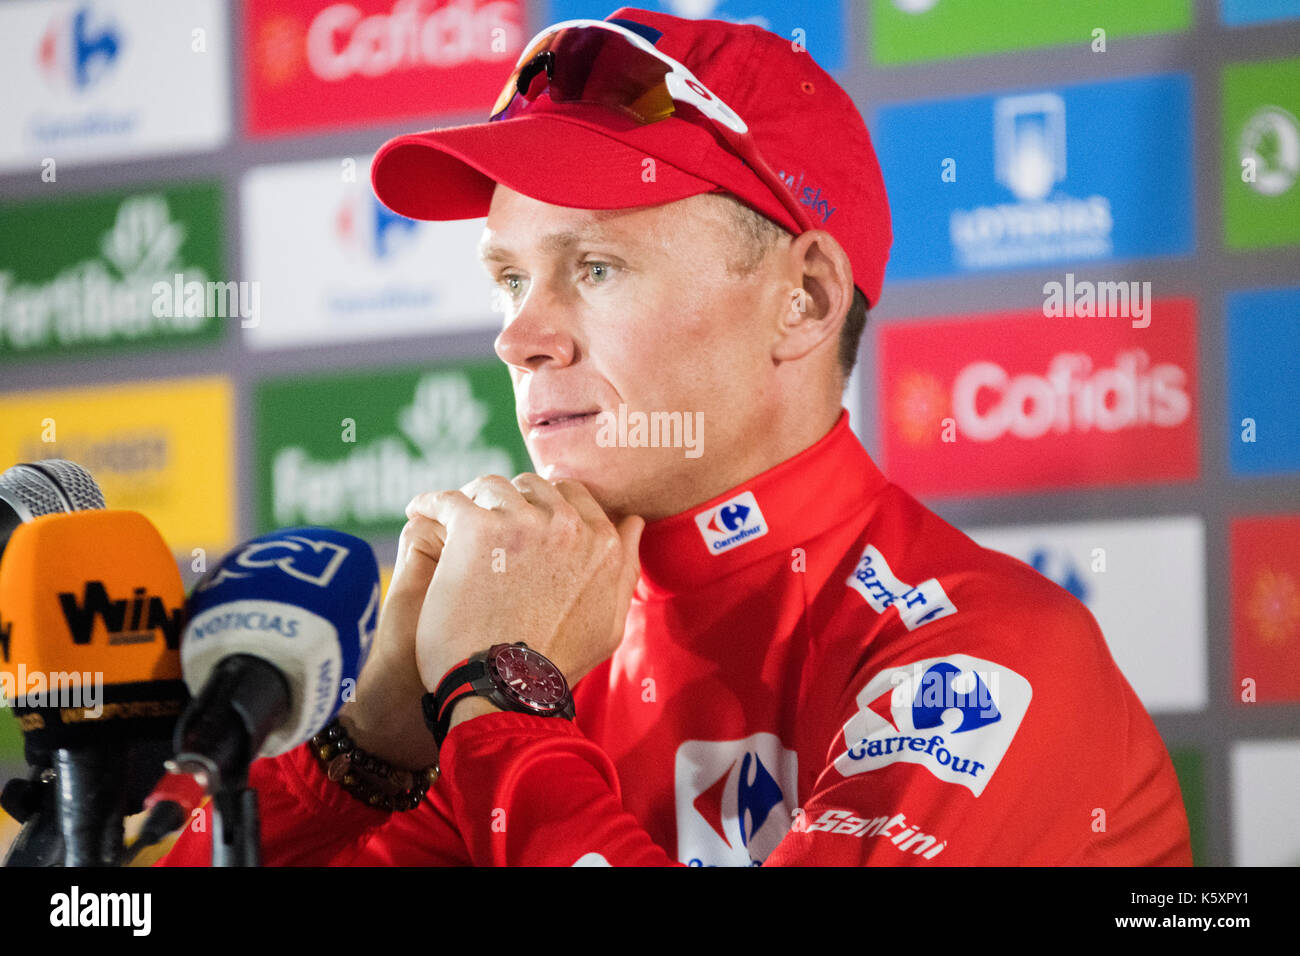 Madrid, Spain. 10th September, 2017. Chris Froome (Team Sky) at the press conference of Tour of Spain (Vuelta a España) between Madrid and Madrid on September 10, 2017 in Madrid, Spain. ©David Gato/Alamy Live News - Stock Image